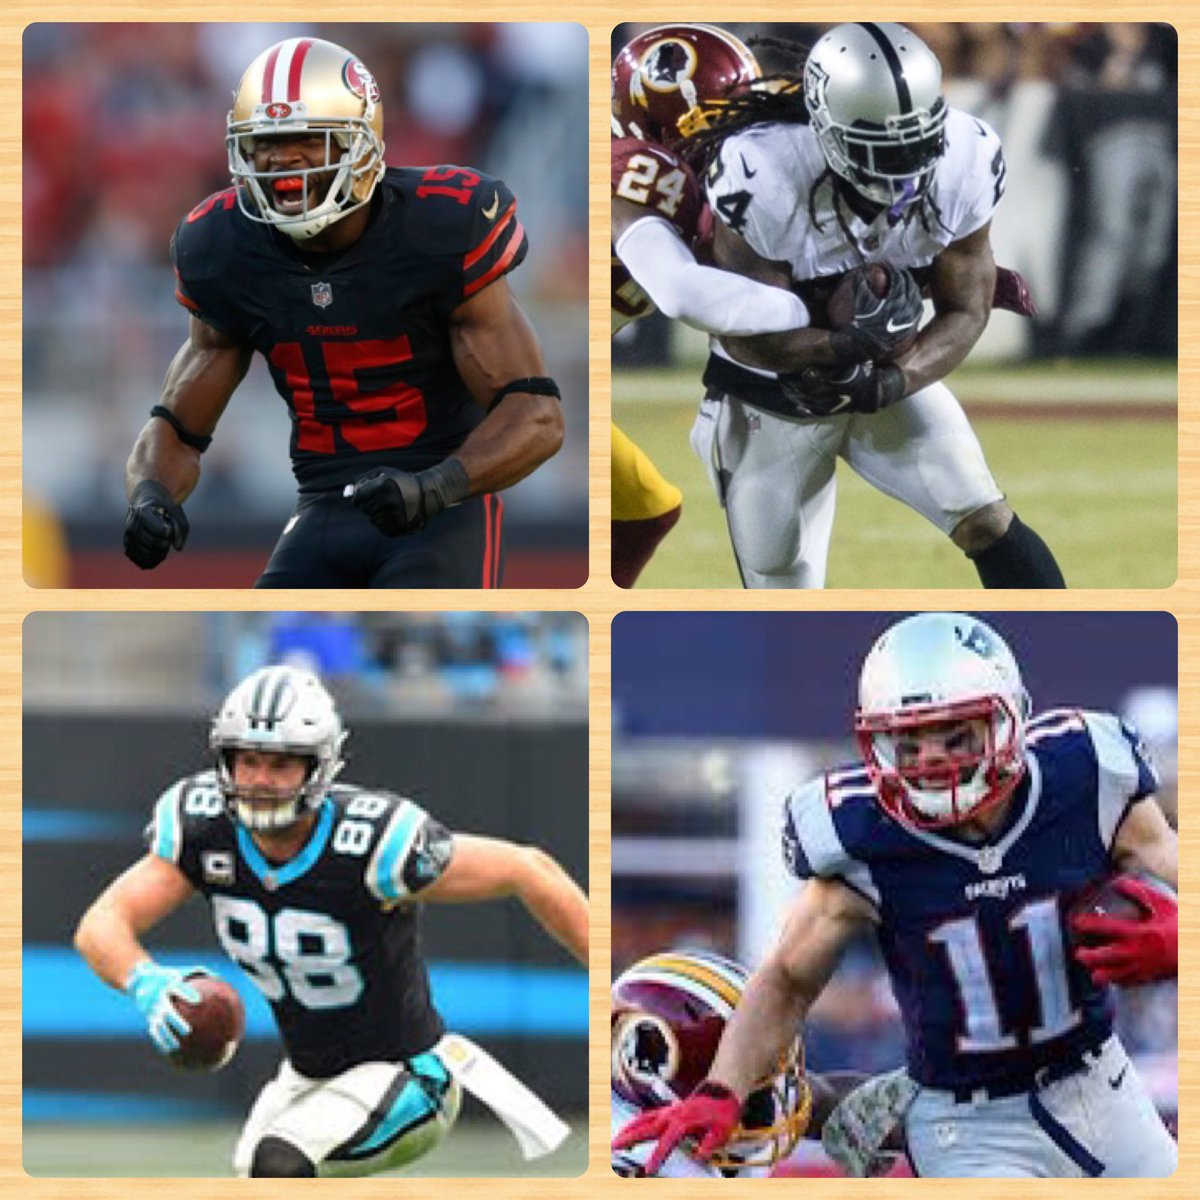 ADP Games Which of these aging veterans are you most willing to draft at their current ADP in #Dynasty PPR leagues and why?   Julian Edelman- 82.0 Greg Olsen- 91.9 Marshawn Lynch- 102.2 Pierre Garcon- 120.3  #FantasyFootball  #NFL<br>http://pic.twitter.com/atwGO63p5u